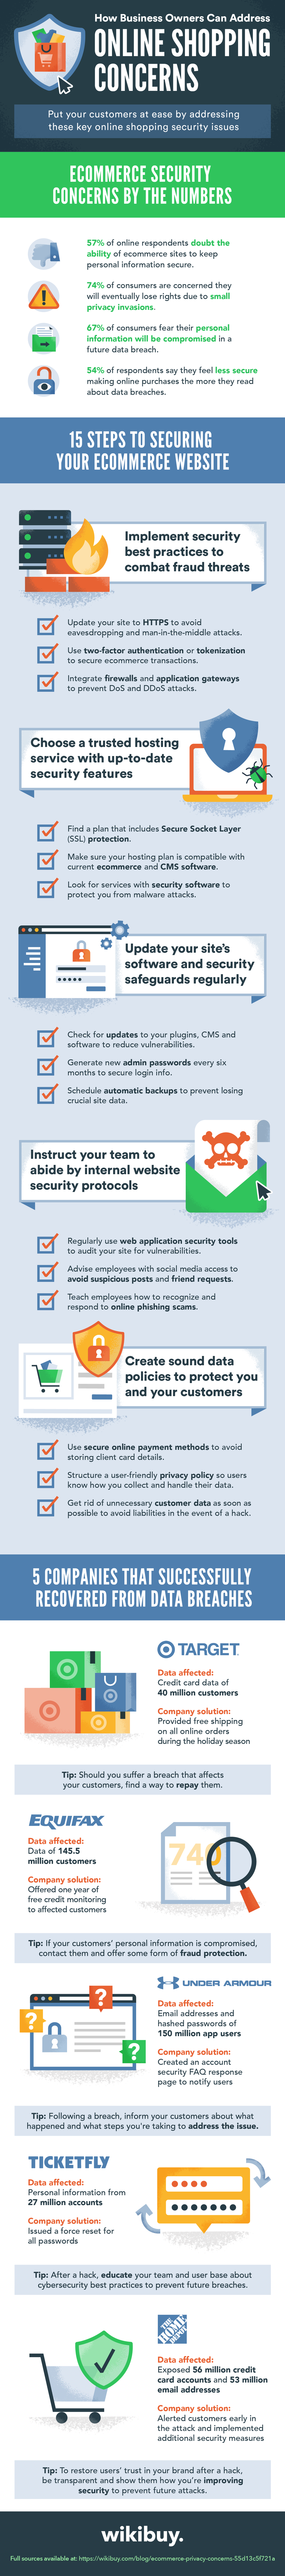 Steps to Securing Your Ecommerce Site